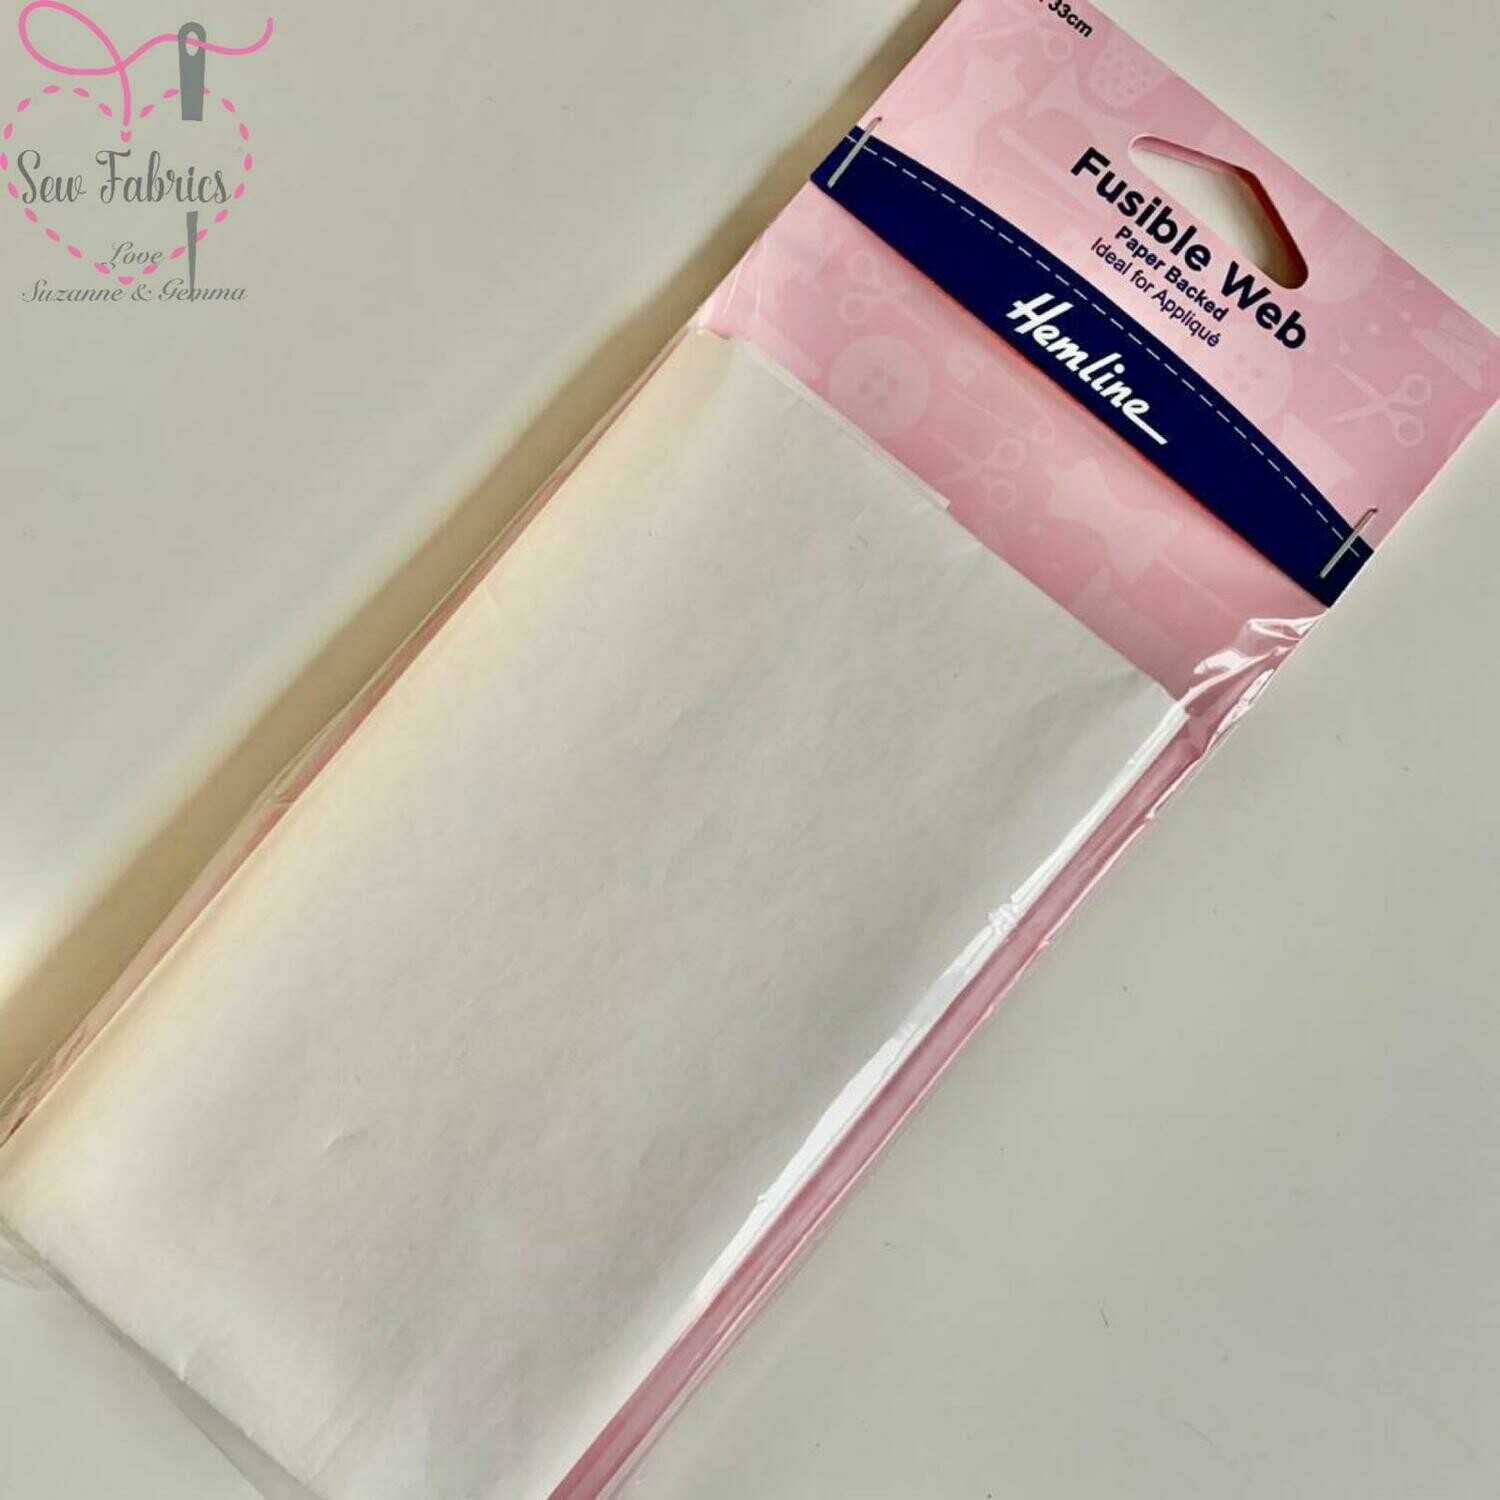 Hemline fusible web, paper backed, ideal for applique